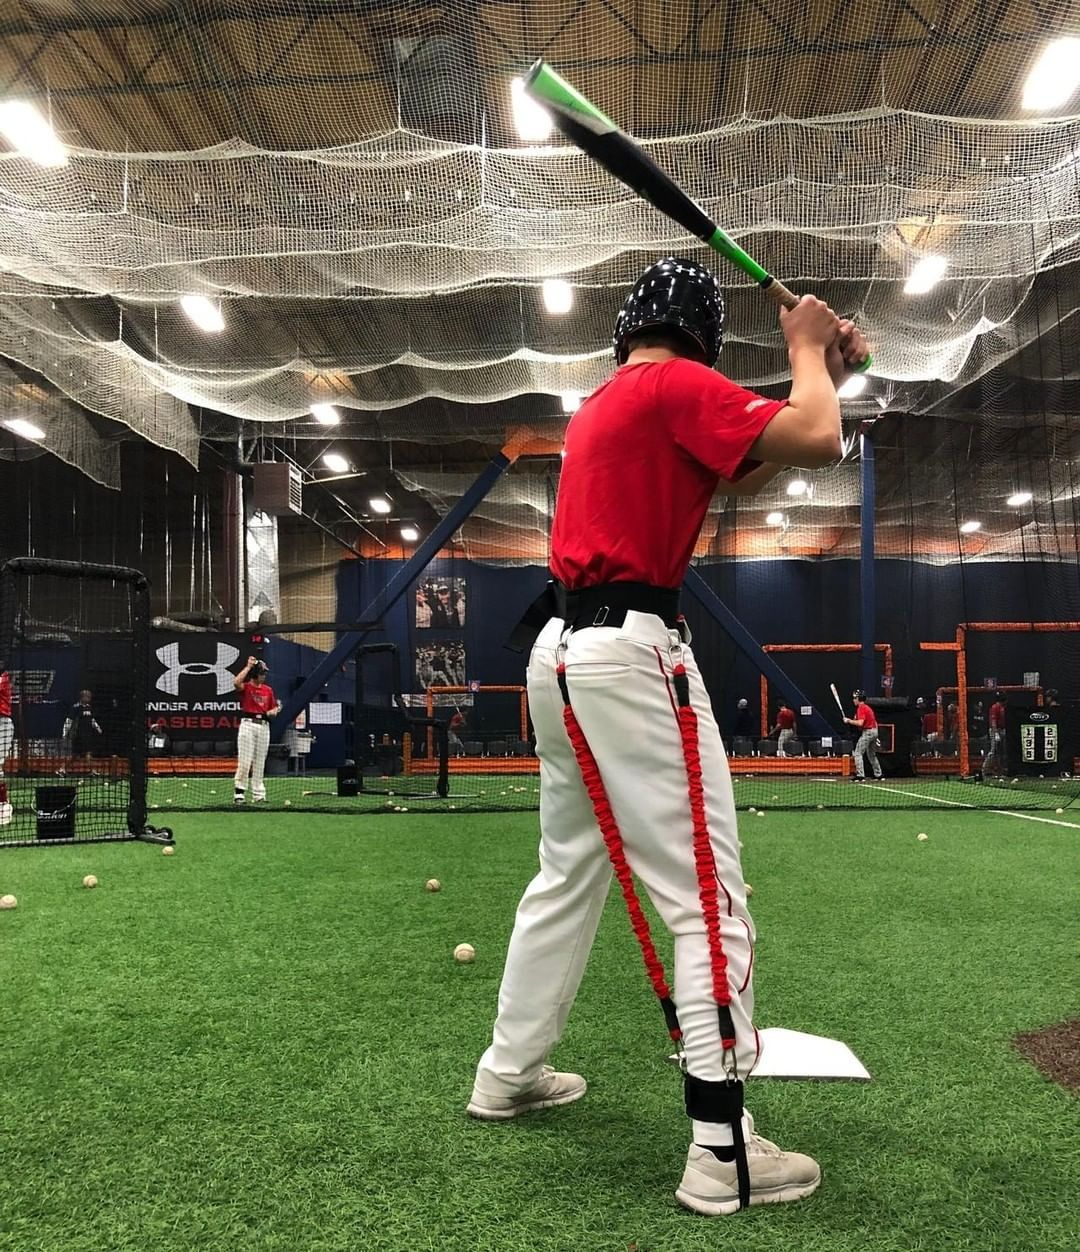 Strap In Clip Up And Watch Your Untapped Power Unlock Visit Www Veloprobaseball Com Today And Find Out Hit Training Baseball Training Major League Baseball